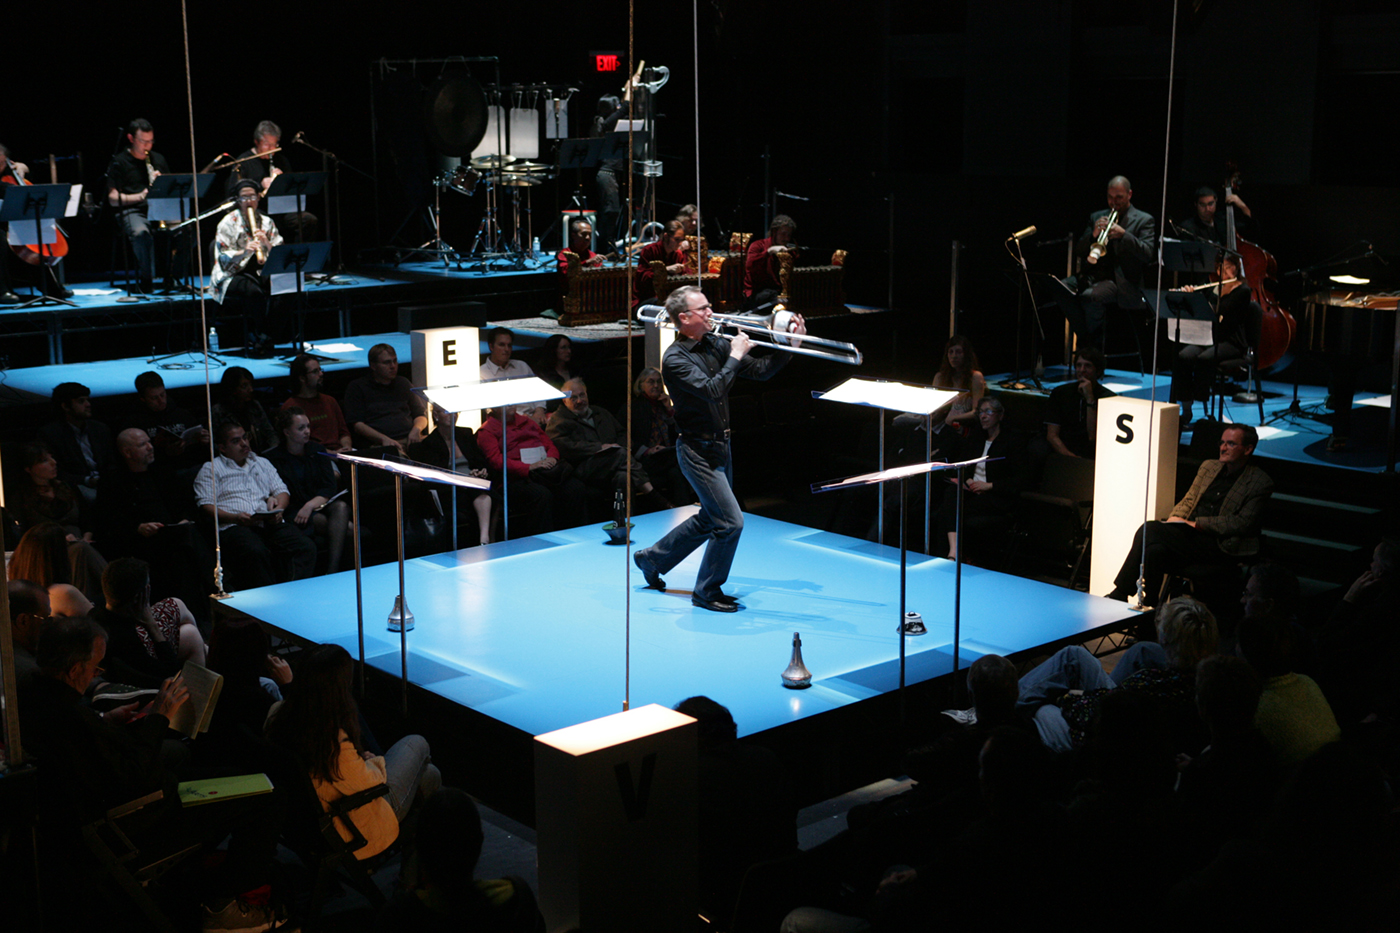 CNP's co-production of 'Vineland Stelae,' a work by Sandeep Bhagwati at CalArts' REDCAT Theater